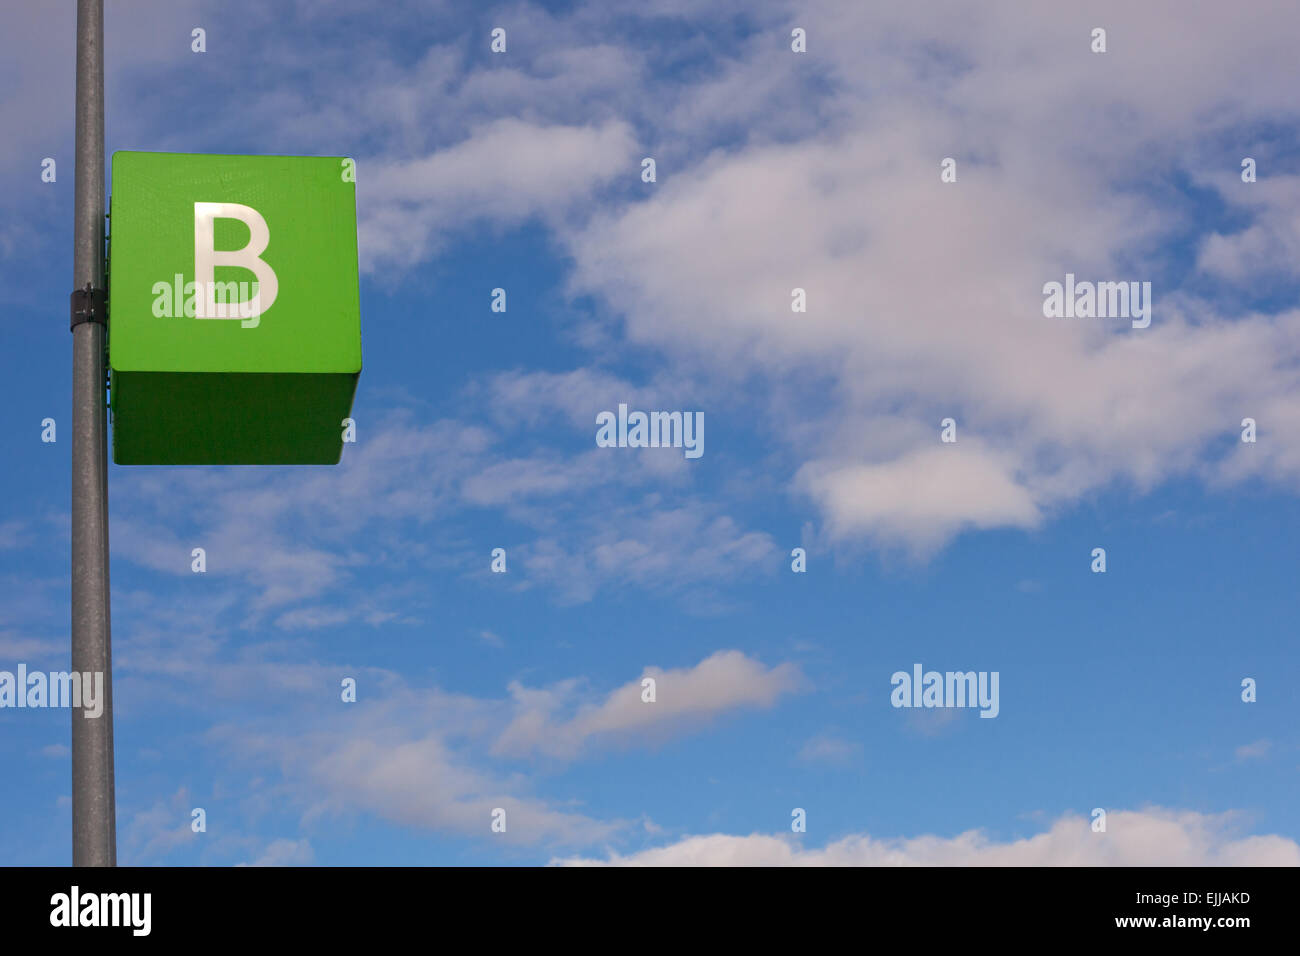 Parking signal pole of letter B area over blue cloudy sky Stock Photo